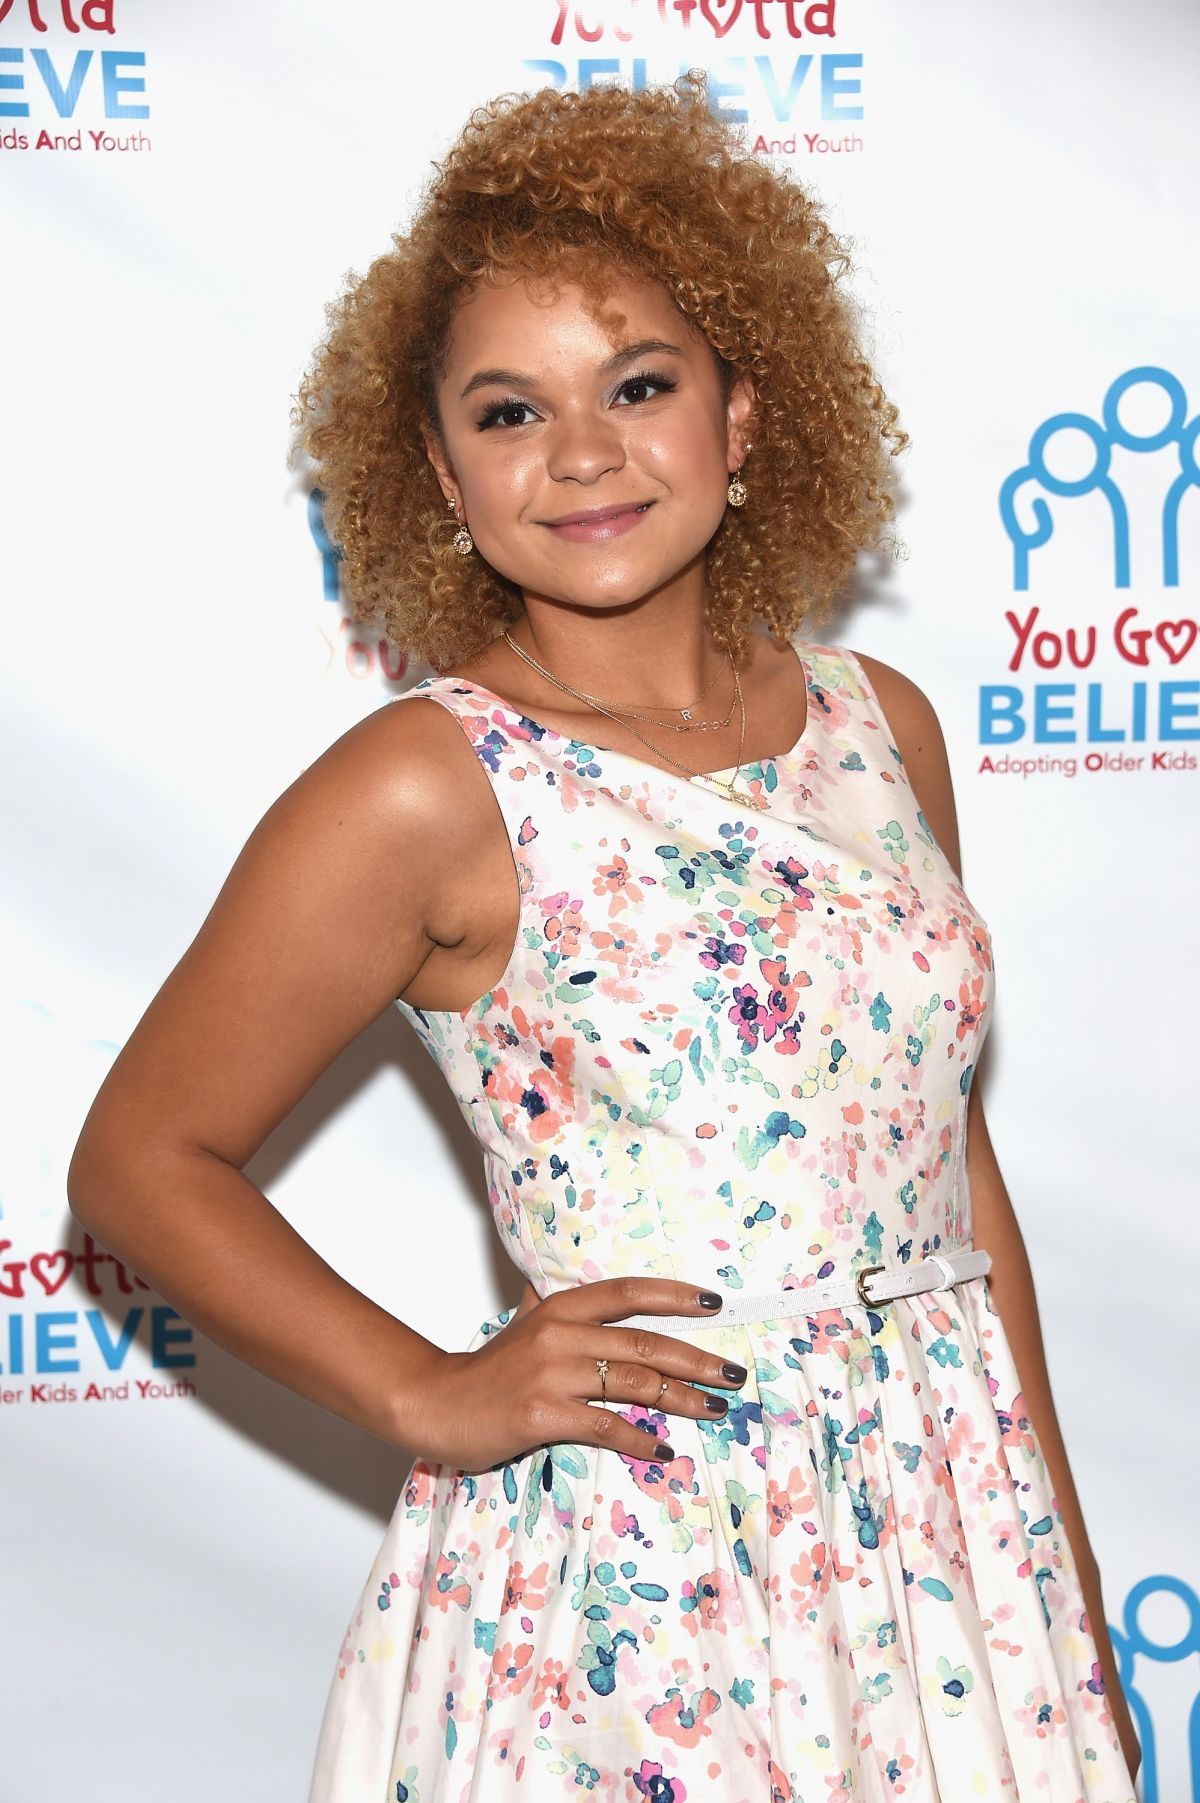 RACHEL CROW at Voices for the Voiceless: Stars for Foster Kids in New York